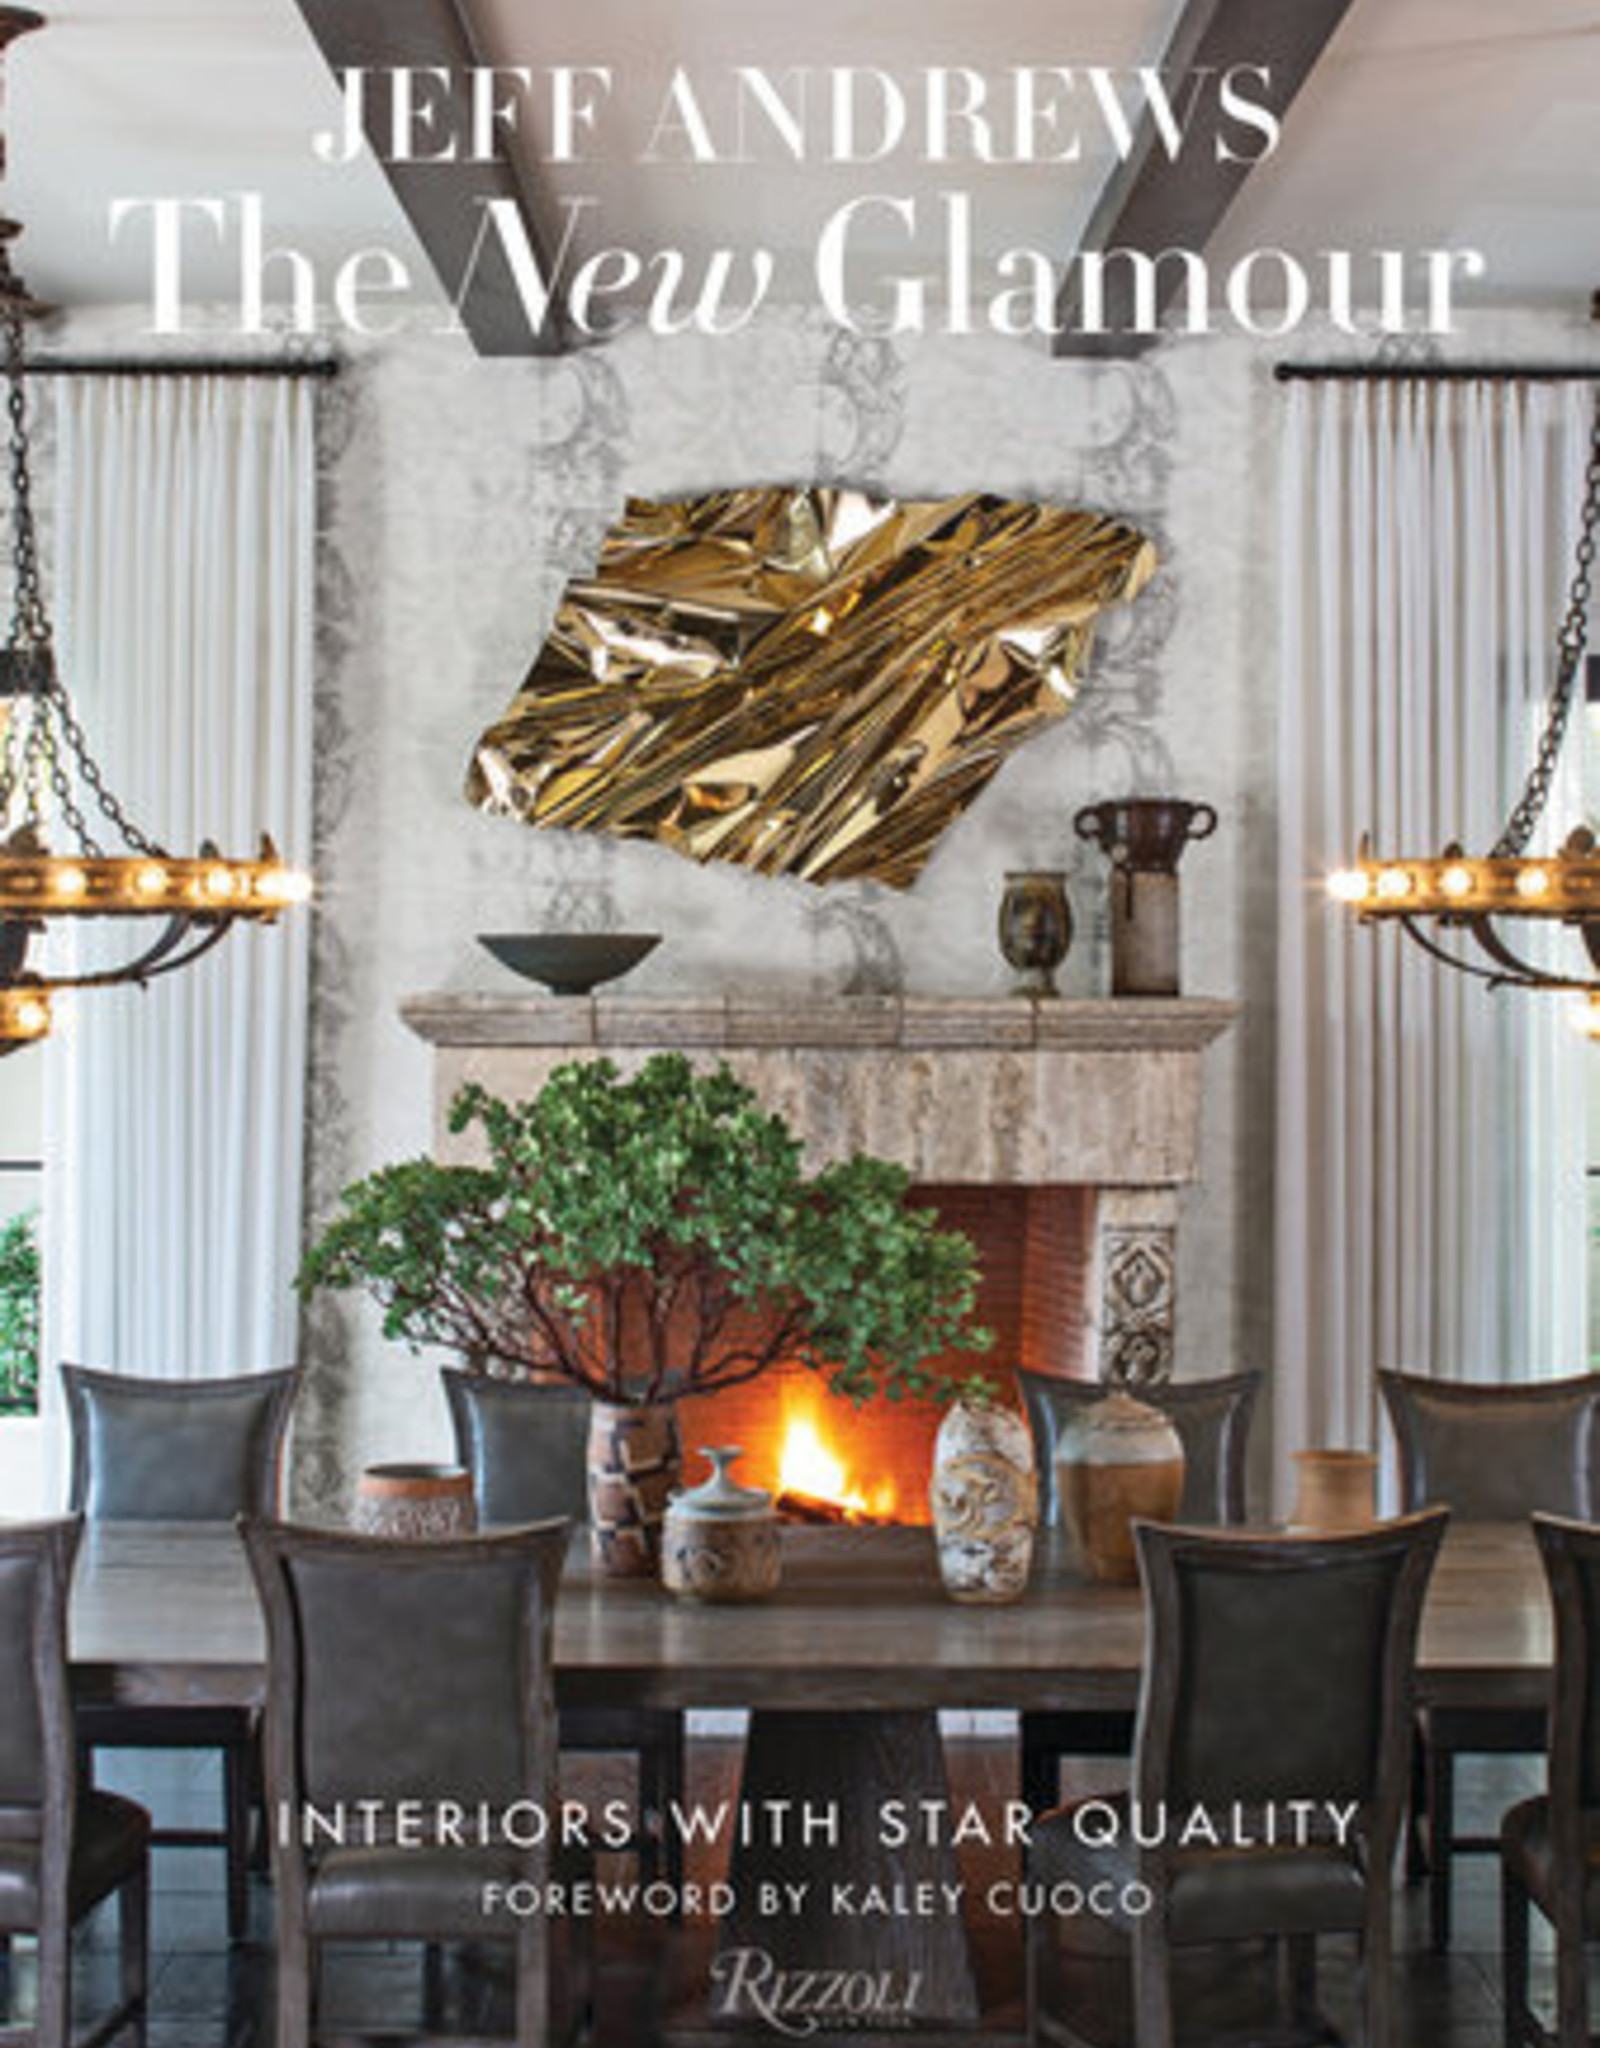 Penguin Random House New Glamour: Interiors With Star Quality